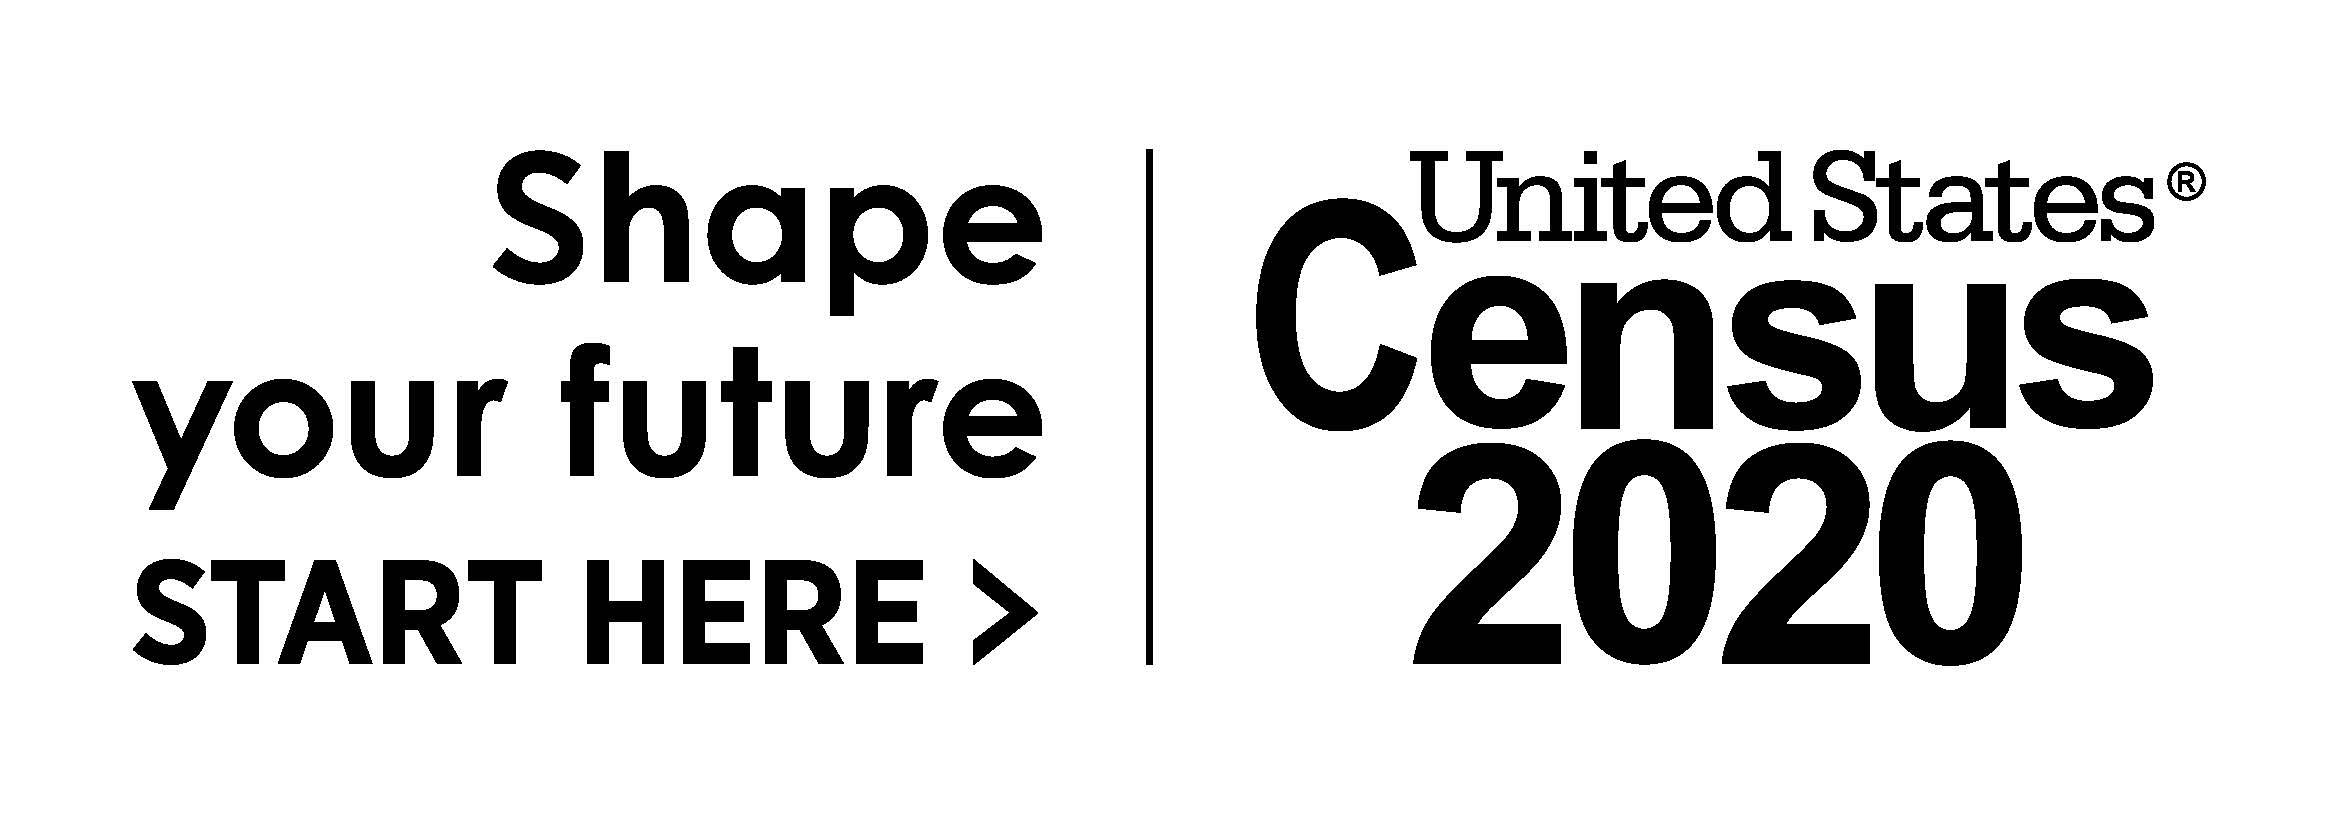 2020 Logo_Census_ Shape Your Future_Black_Limited Use